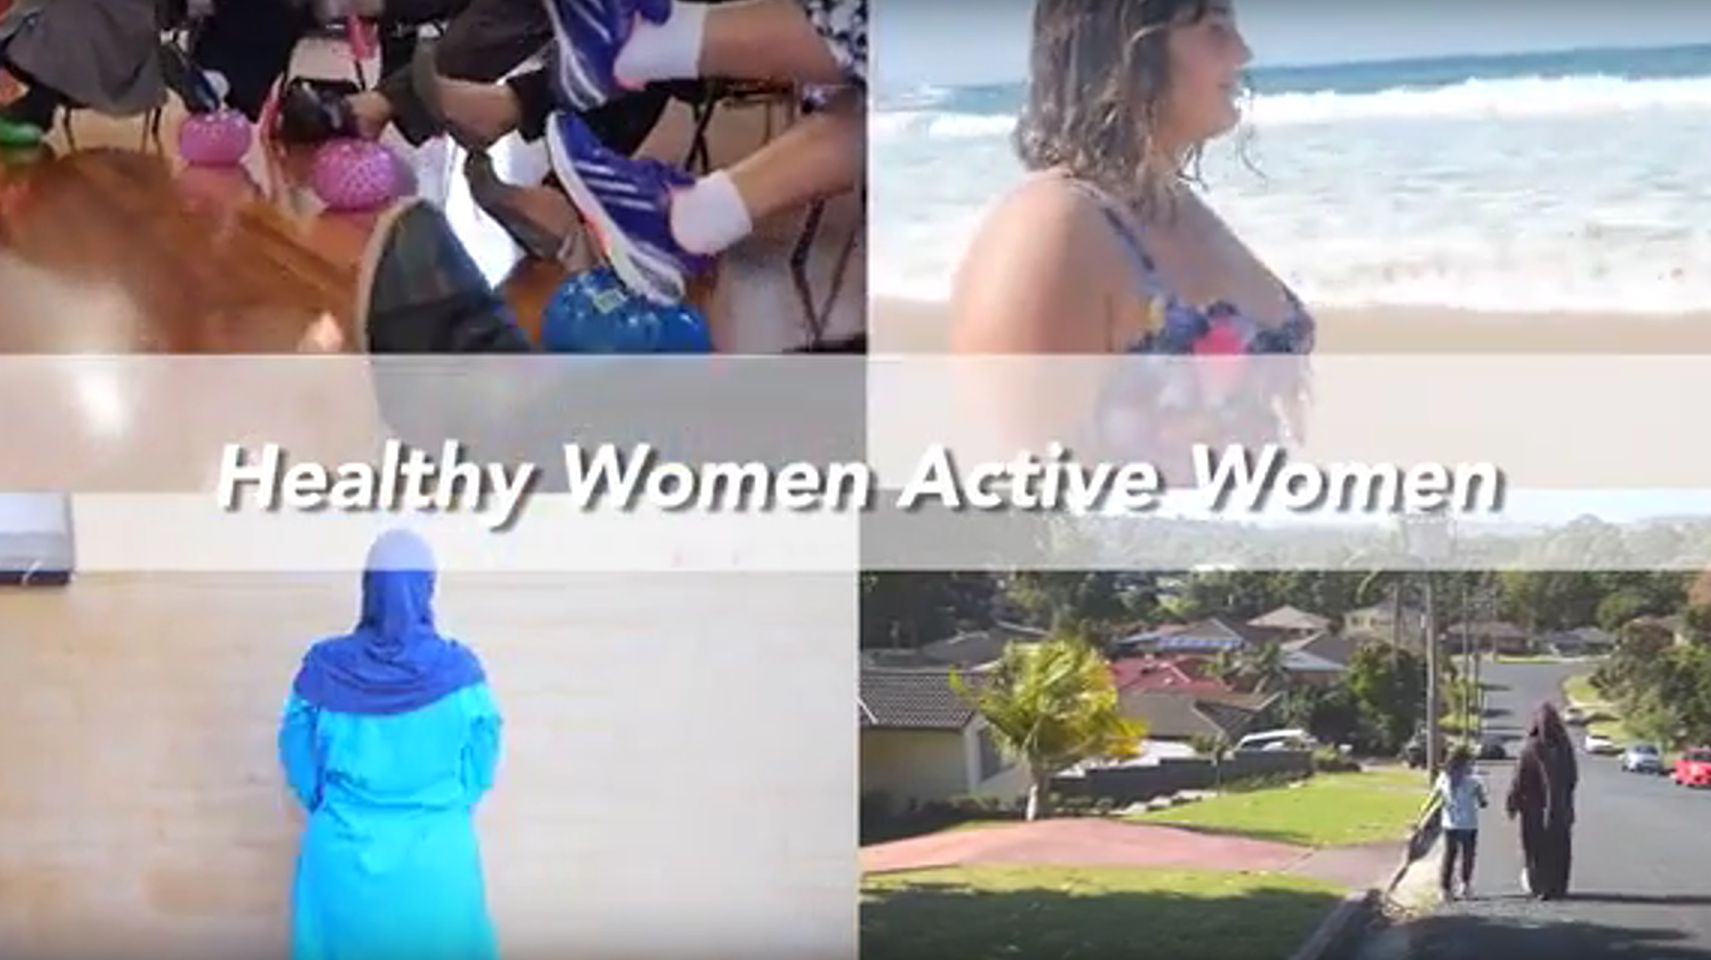 Healthy Women Active Women